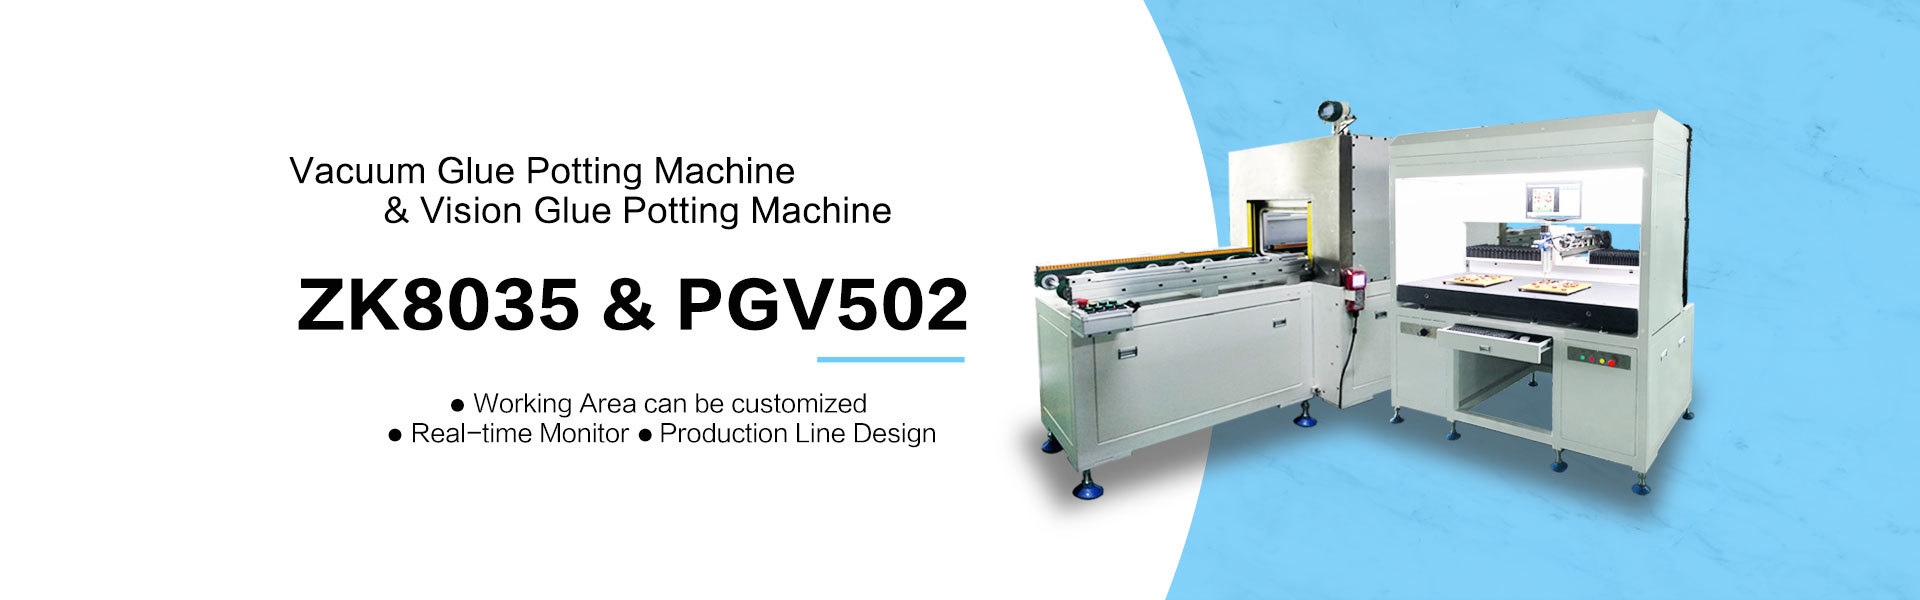 Vacuum glue potting machine & vision glue potting machine